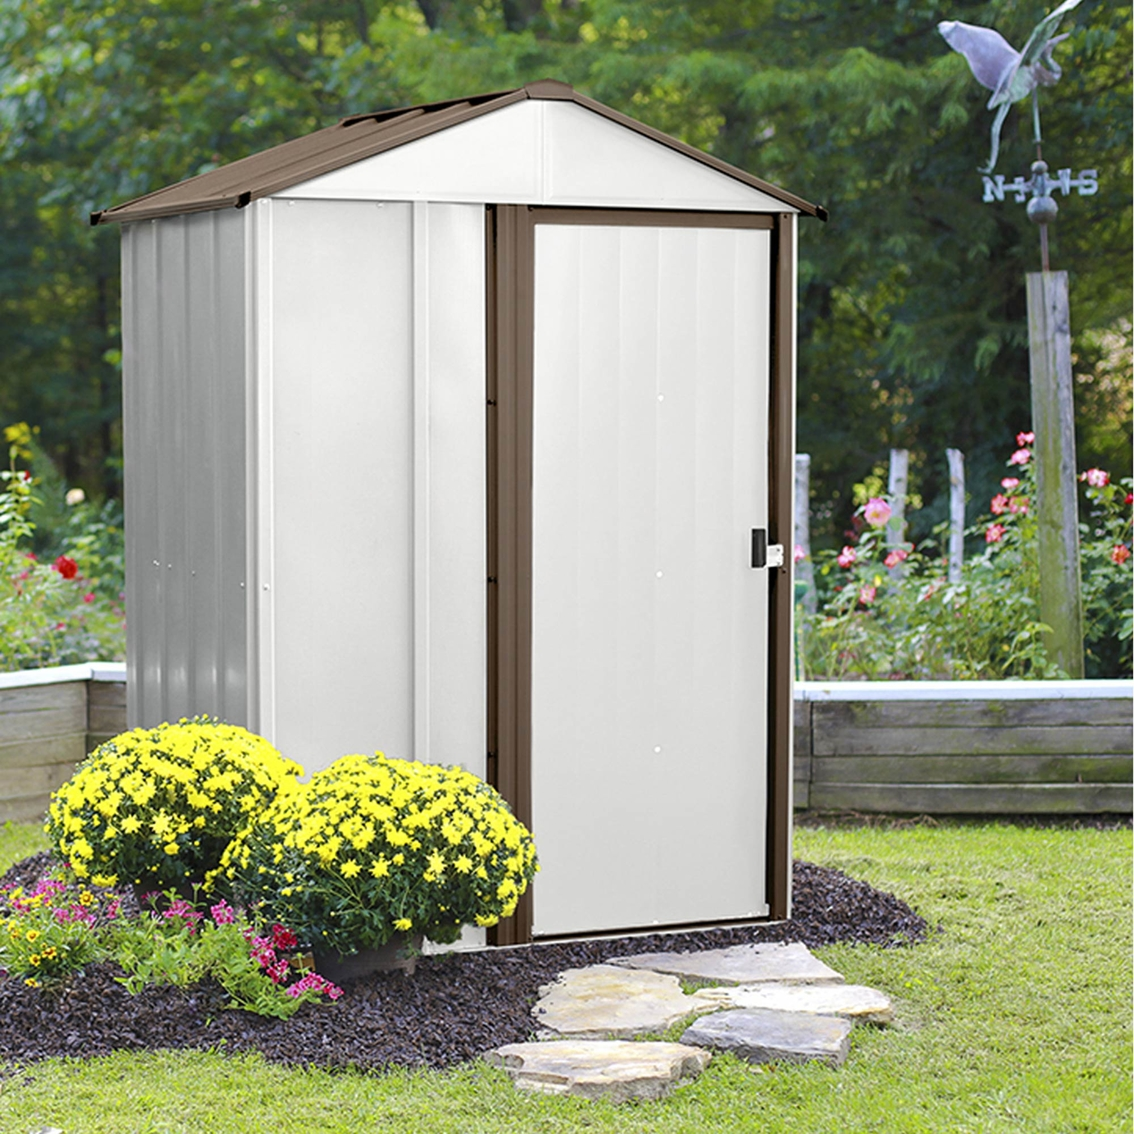 Steel Storage Sheds Arrow Newburgh 5 X 4 Ft Steel Storage Shed Storage Sheds More